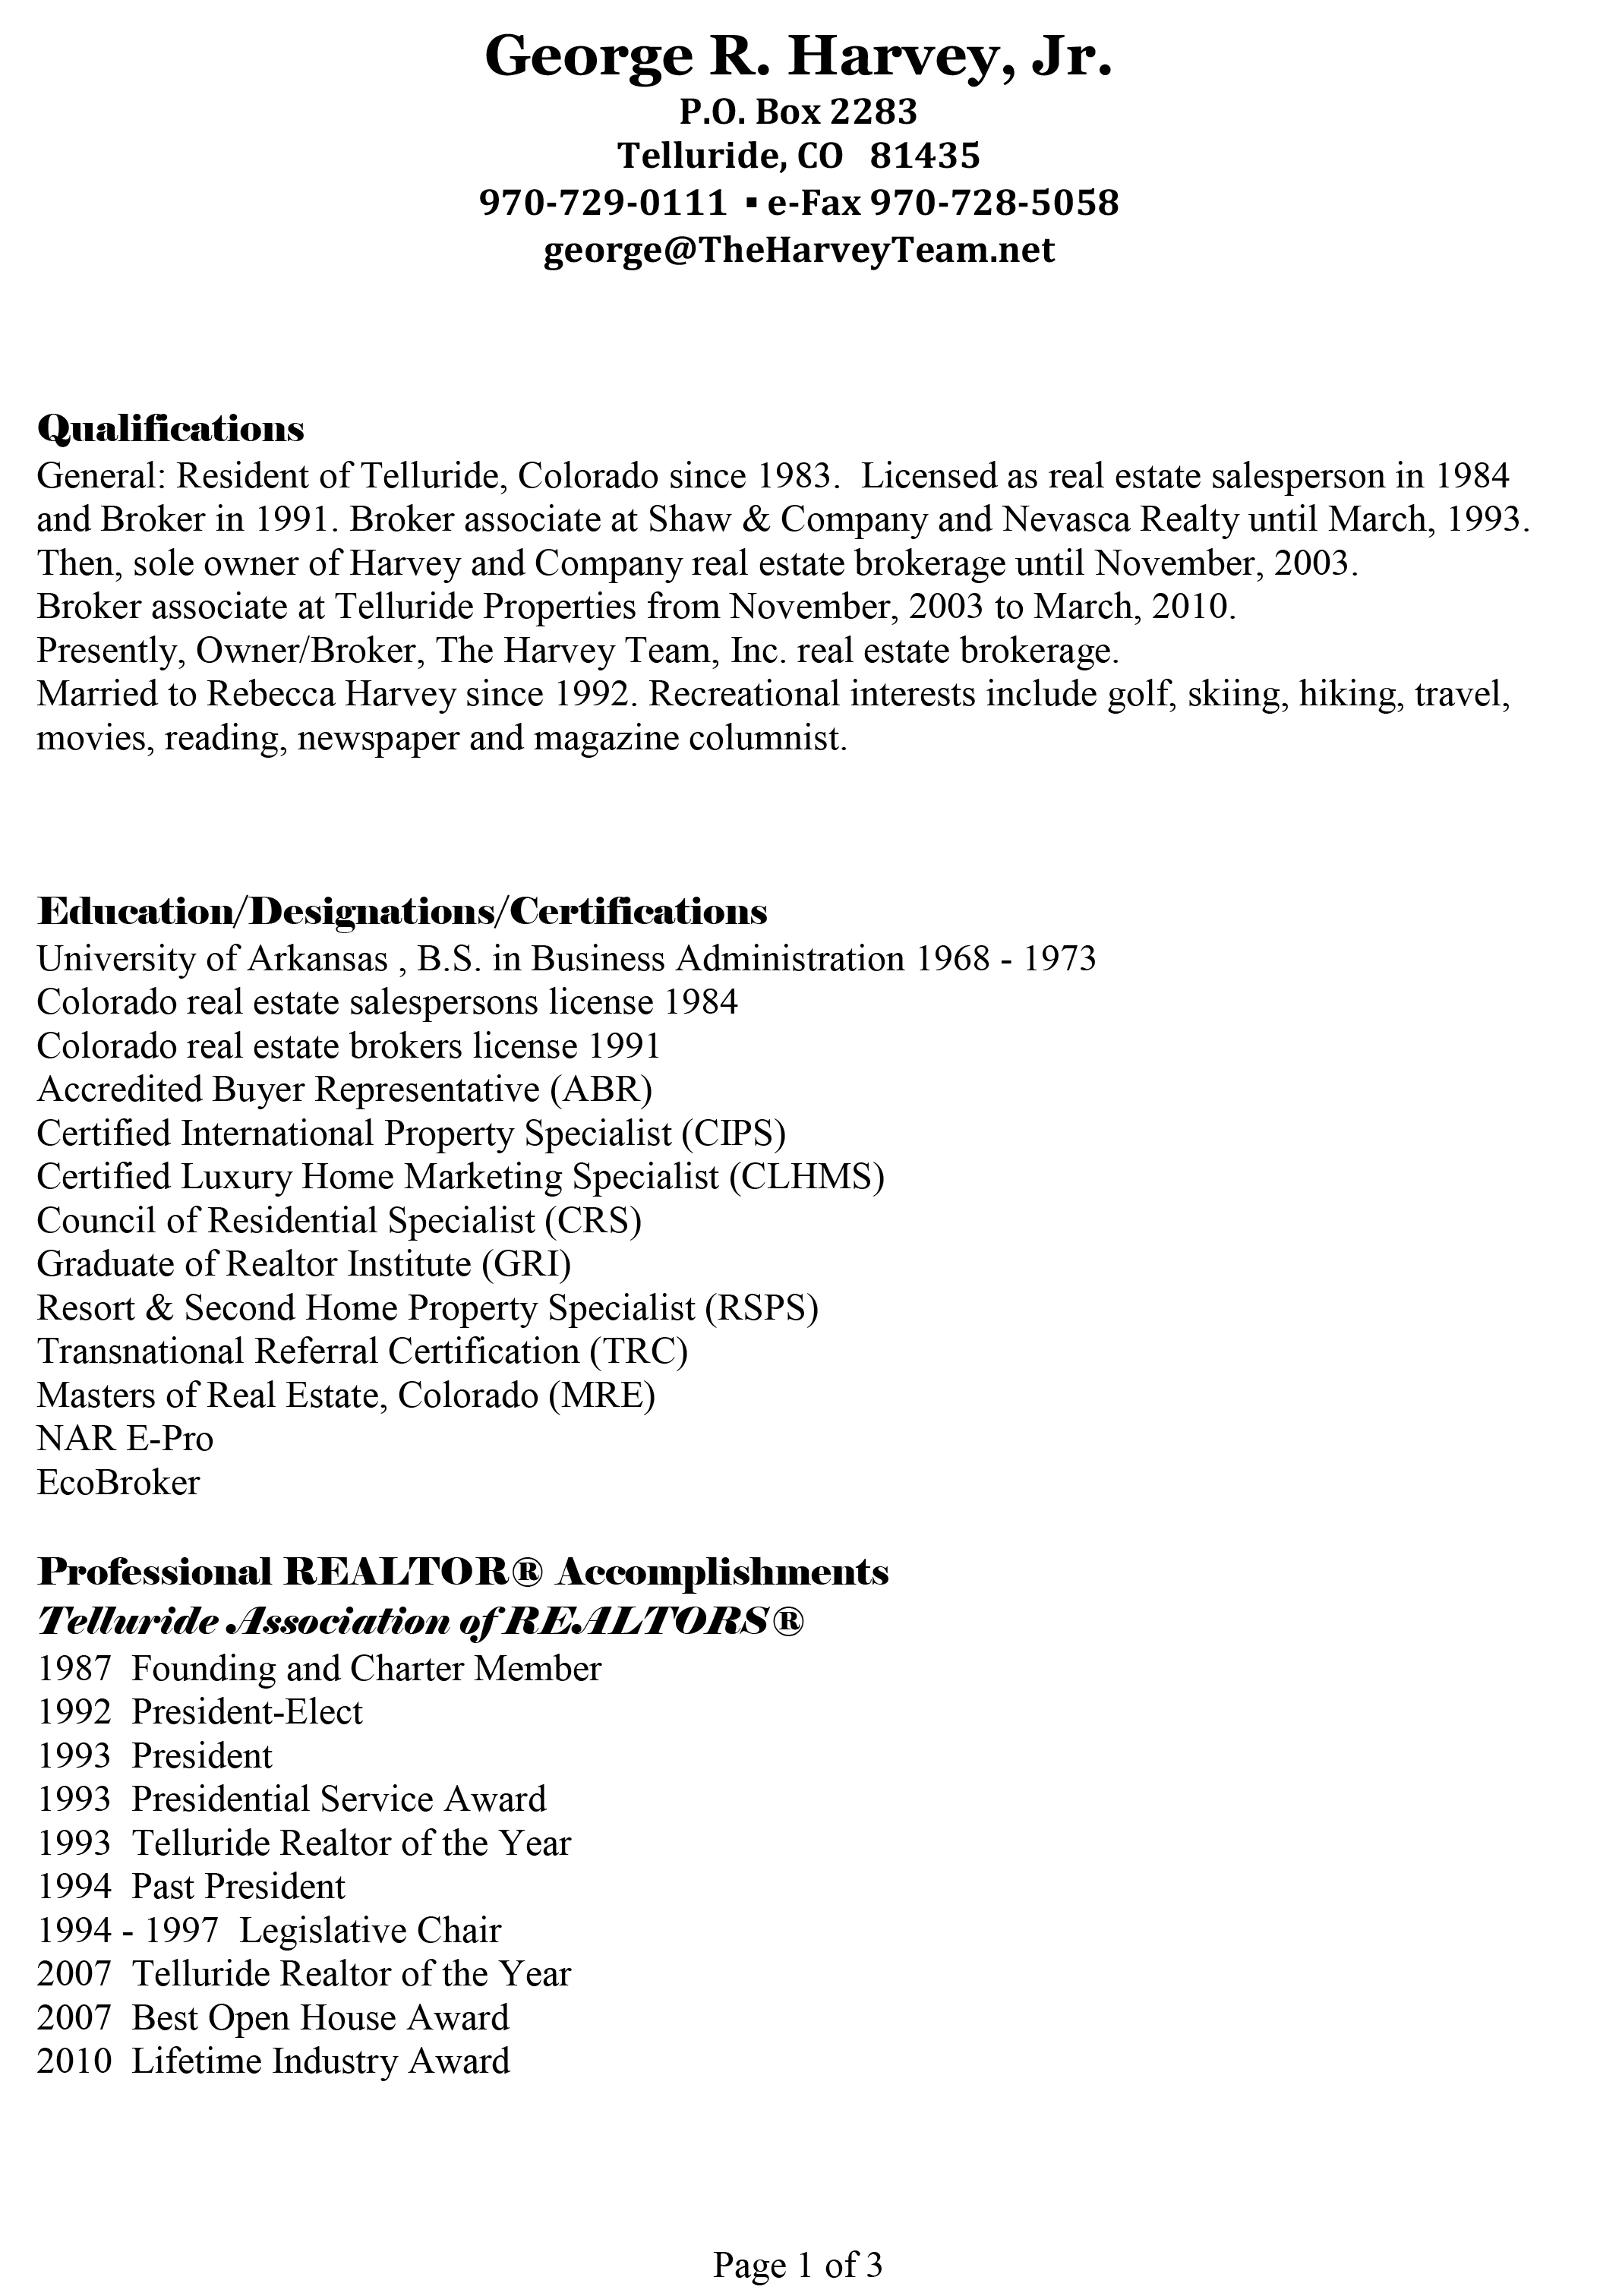 George Harvey Resume - The Harvey Team